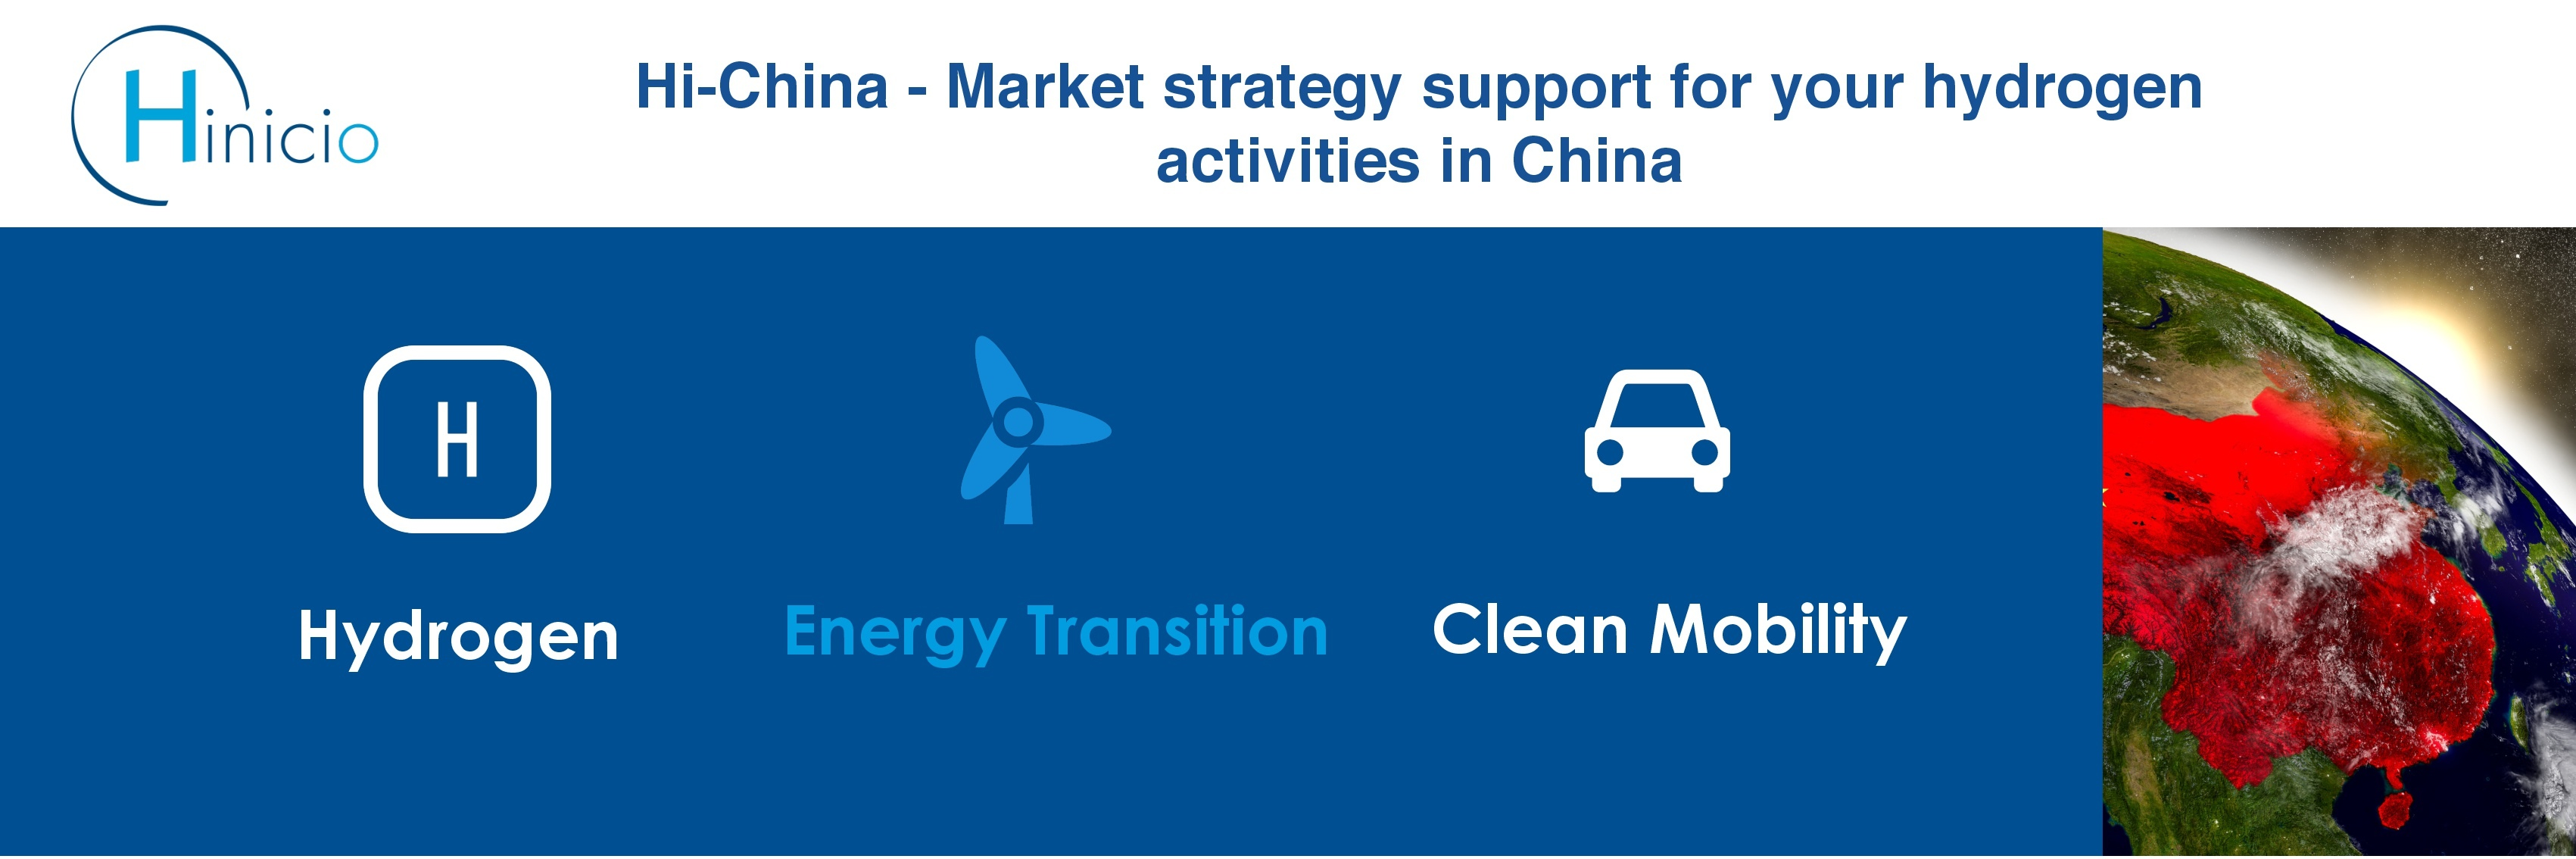 Hi-China – Market Strategy Support For Your Hydrogen Activities In China